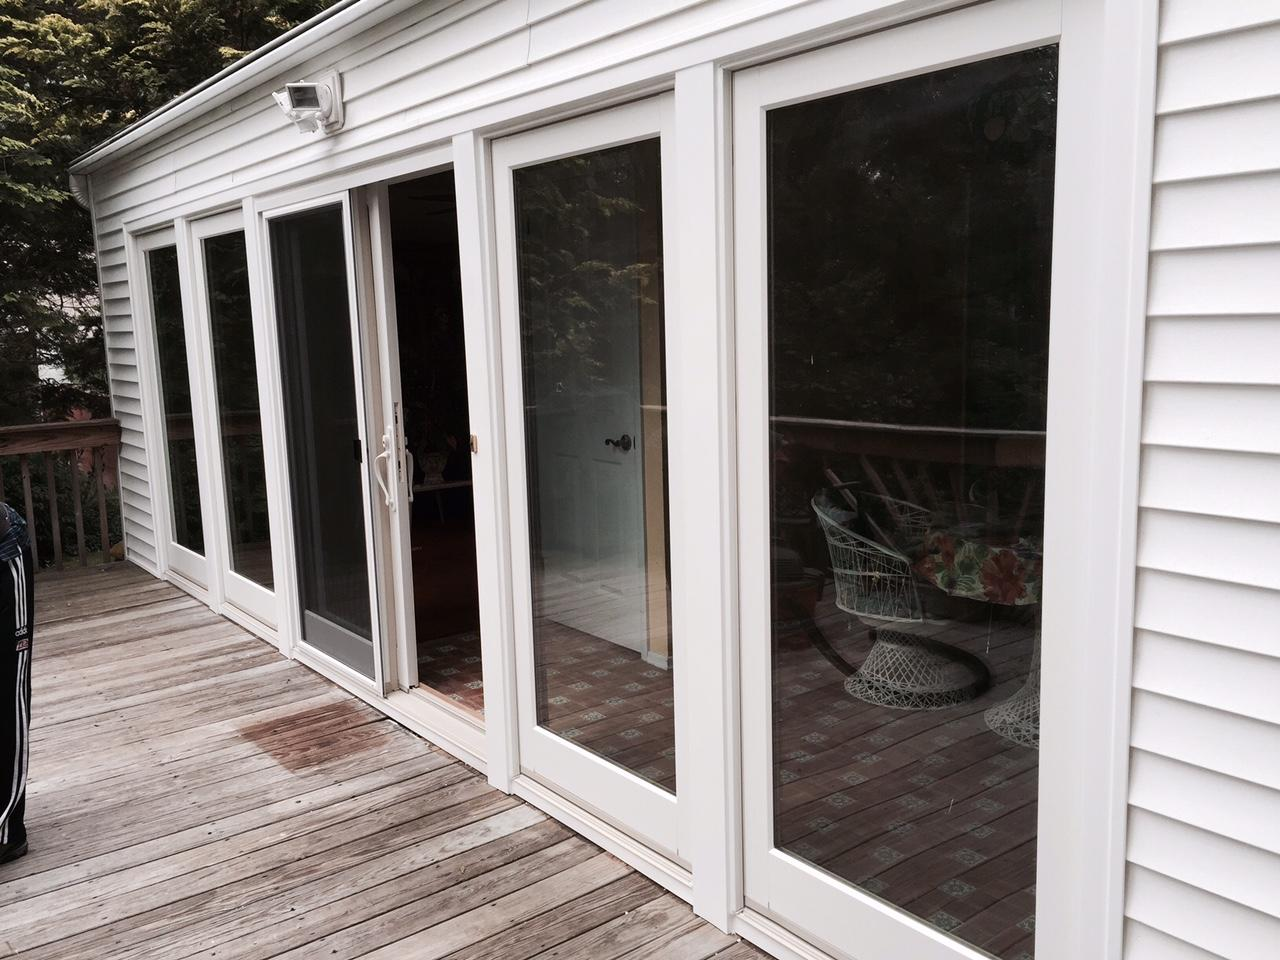 Marvin Integrity Picture and French Patio Door Install in Vernon, NJ